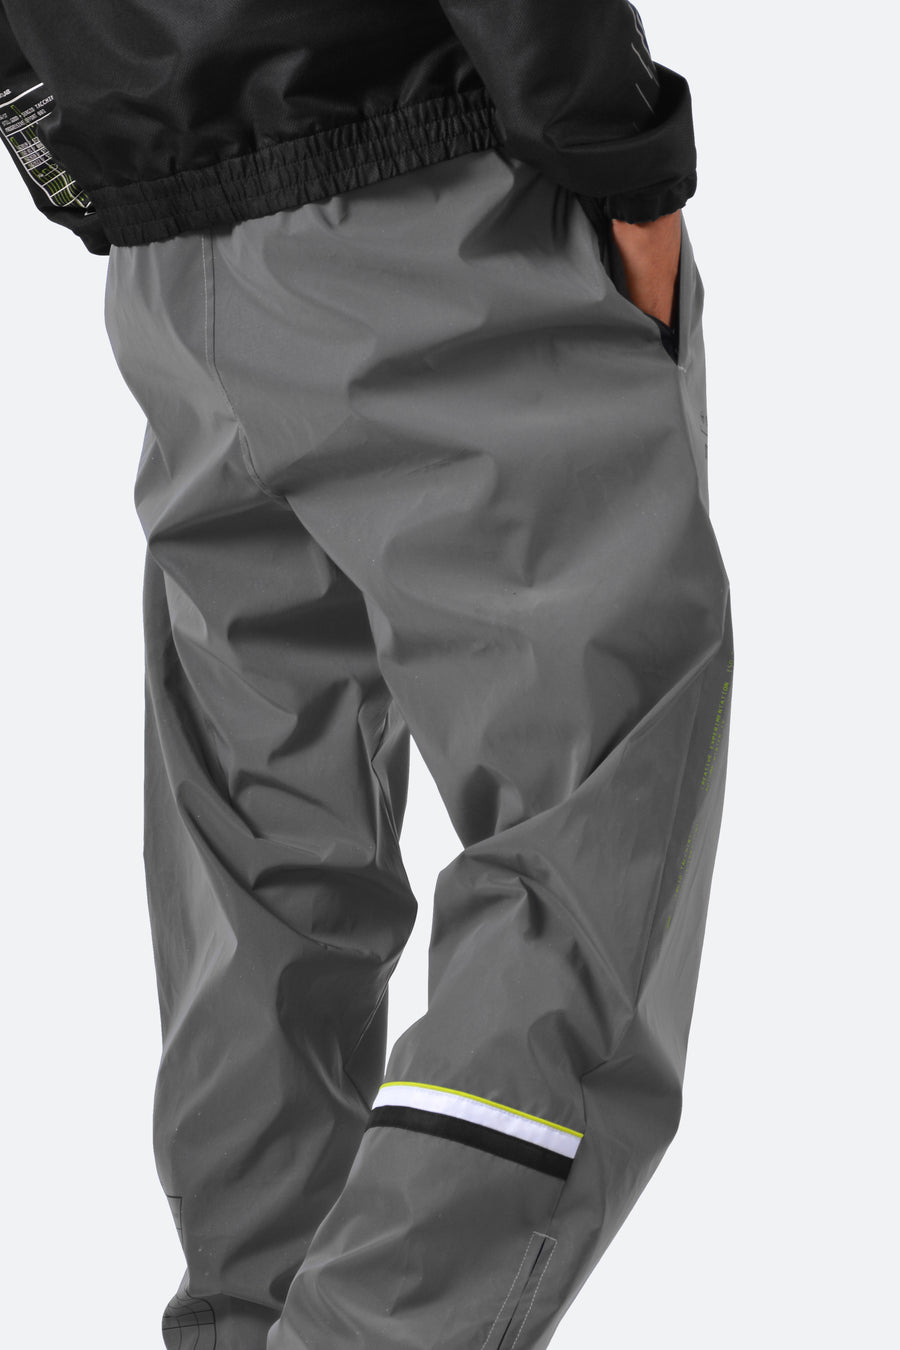 Sergio Tacchini Cryo Reflective Track Pants | Still Good